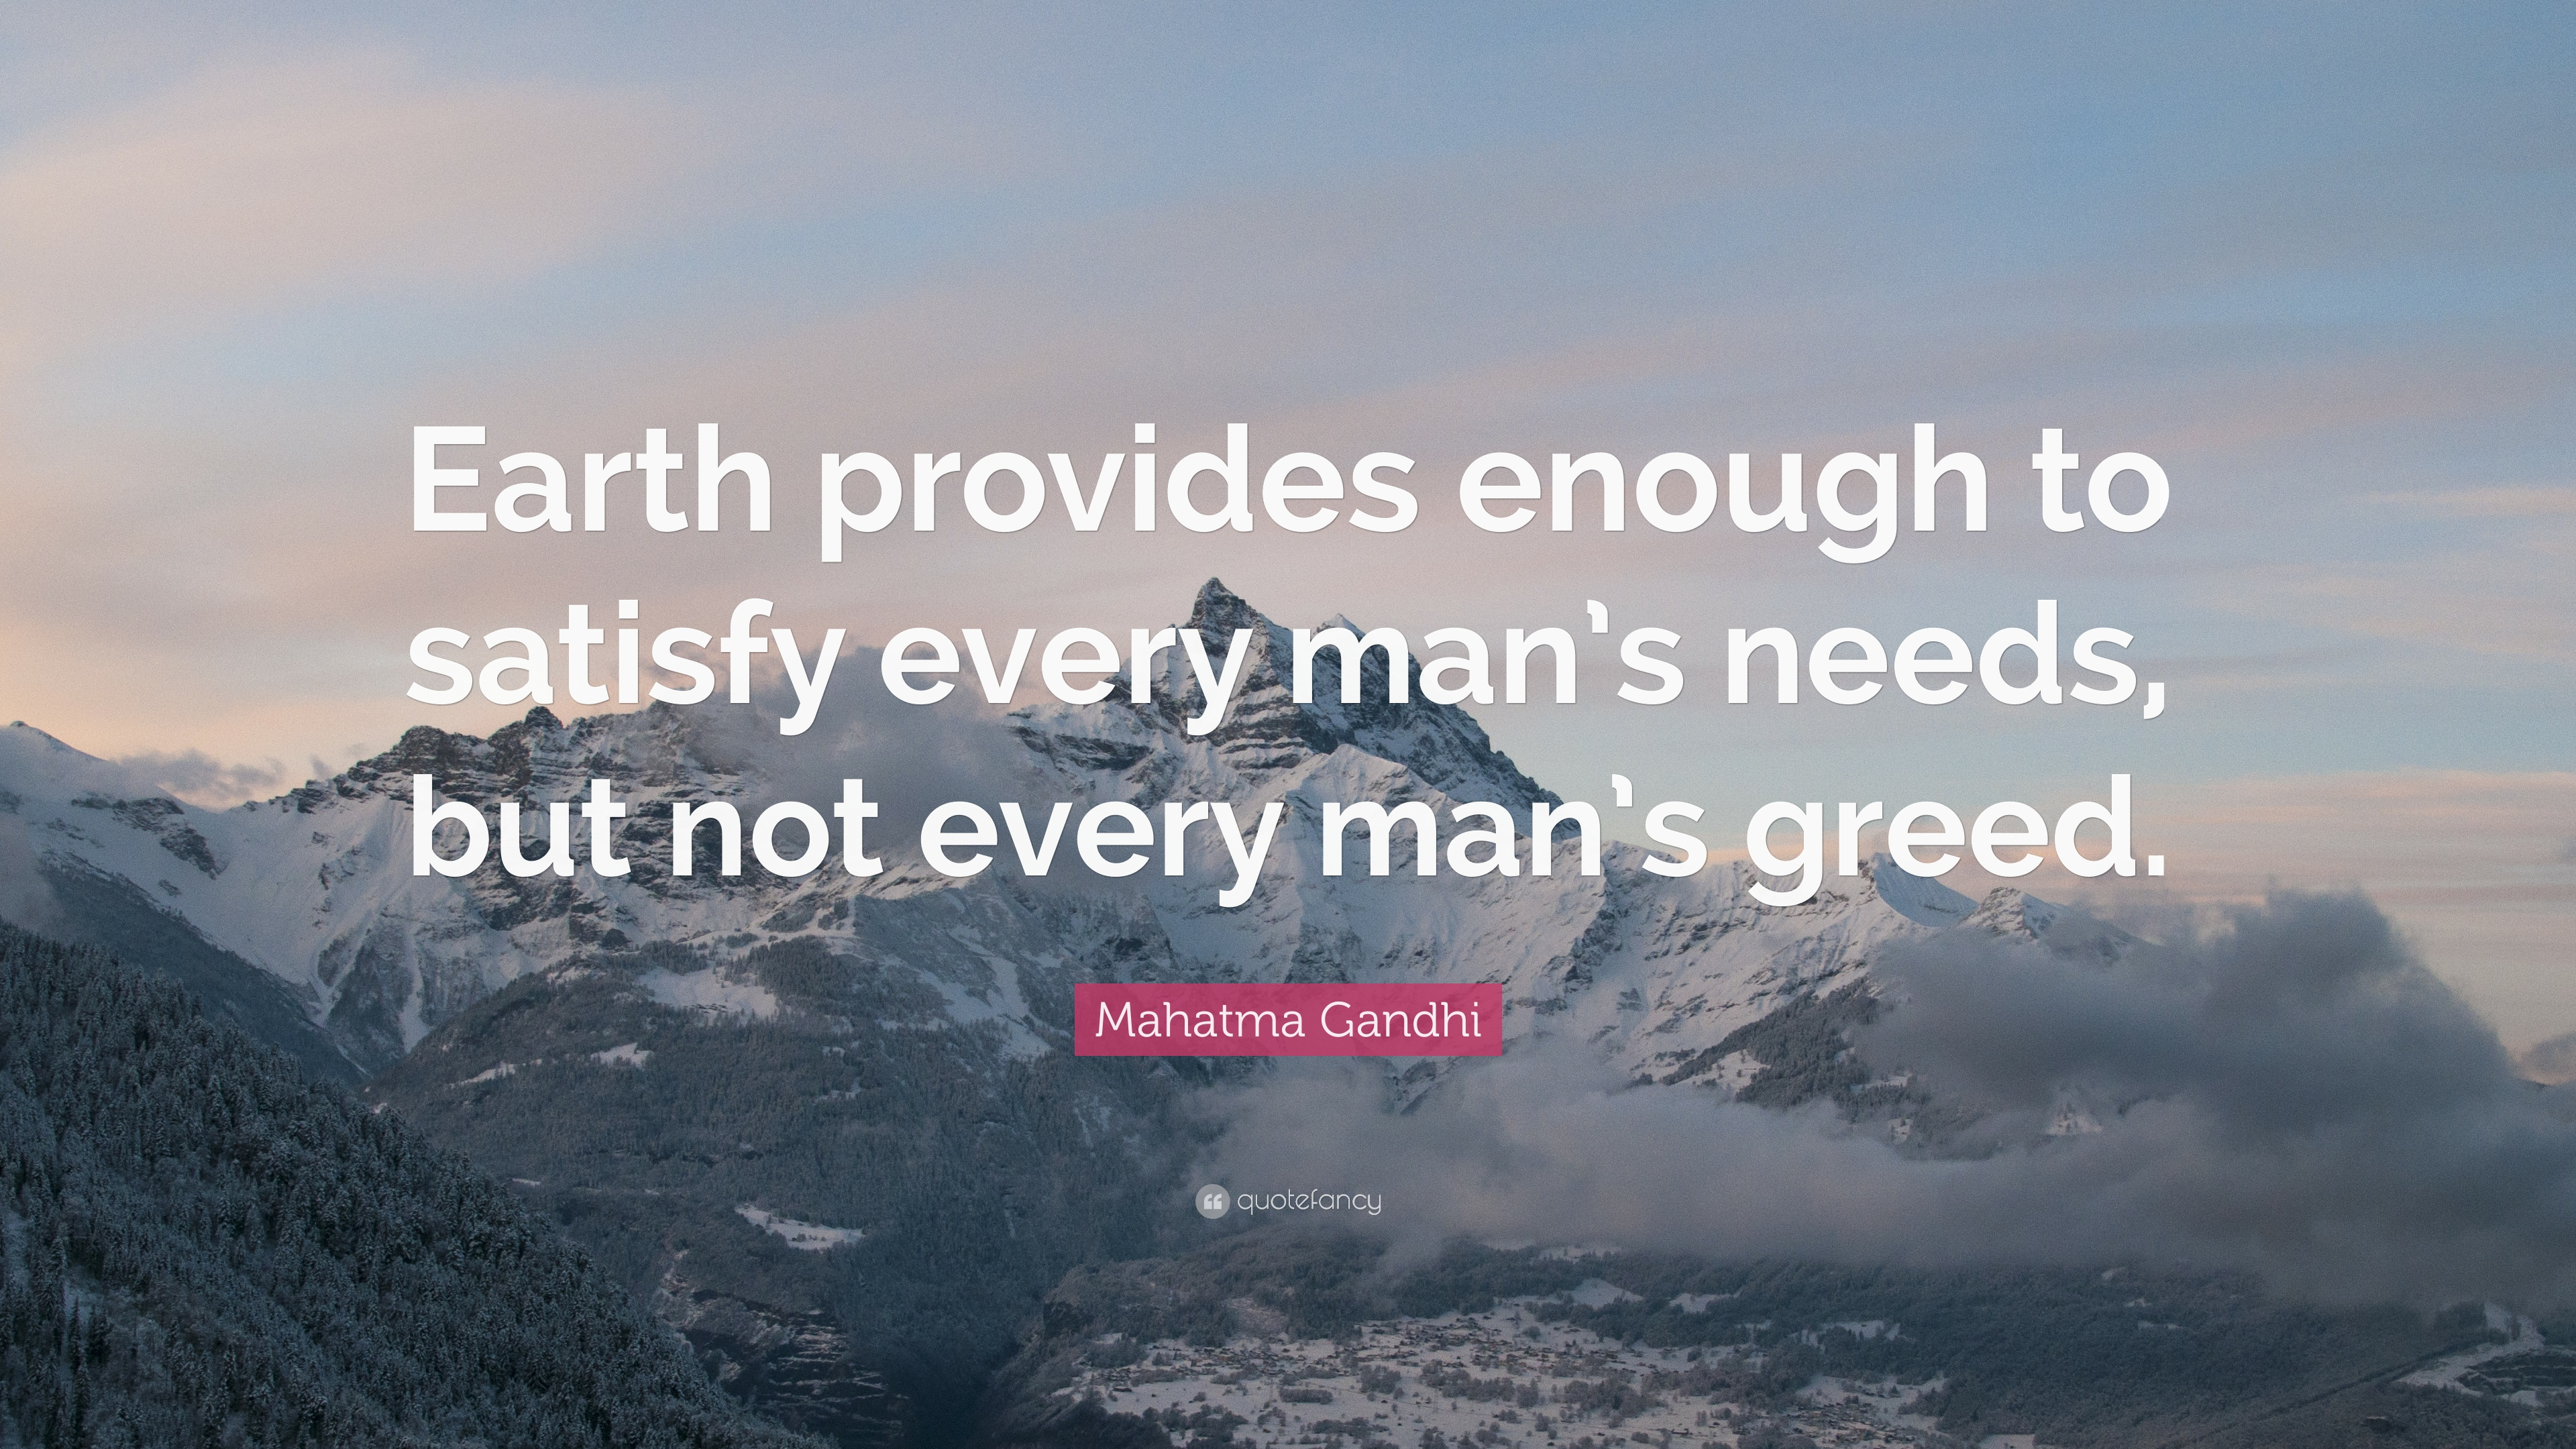 earth provides enough to satisfy every man s need but not every man s greed A collection of famous quotes about greed  earth provides enough to satisfy  every man's need, but not every man's greed (quote by - mahatma gandhi .